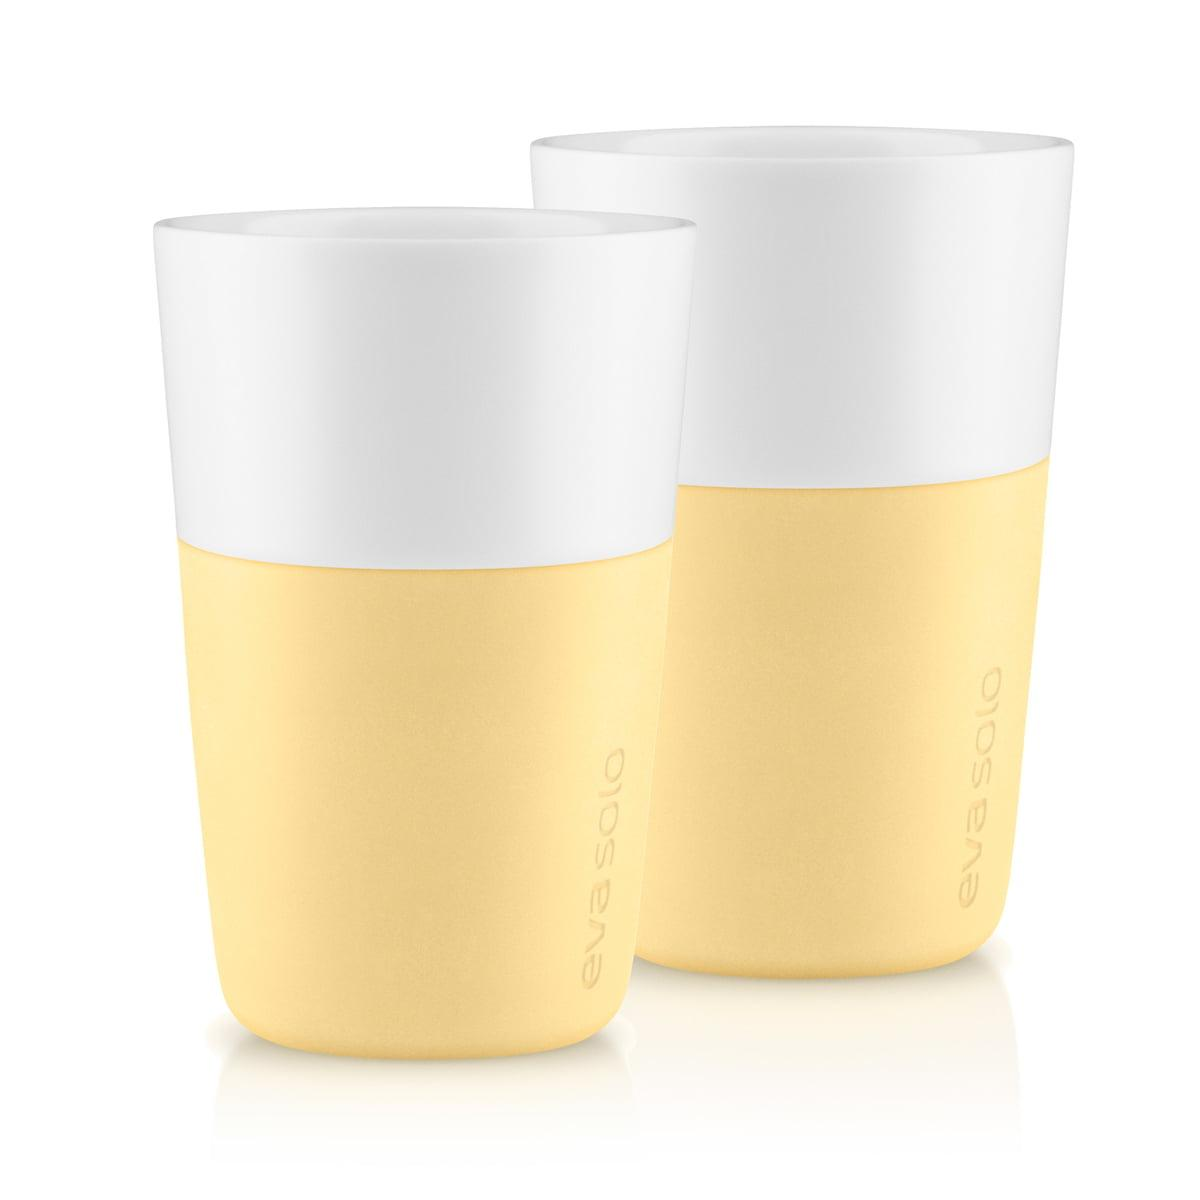 Eva Solo - Caffé Latte-Becher (2er-Set), lemon